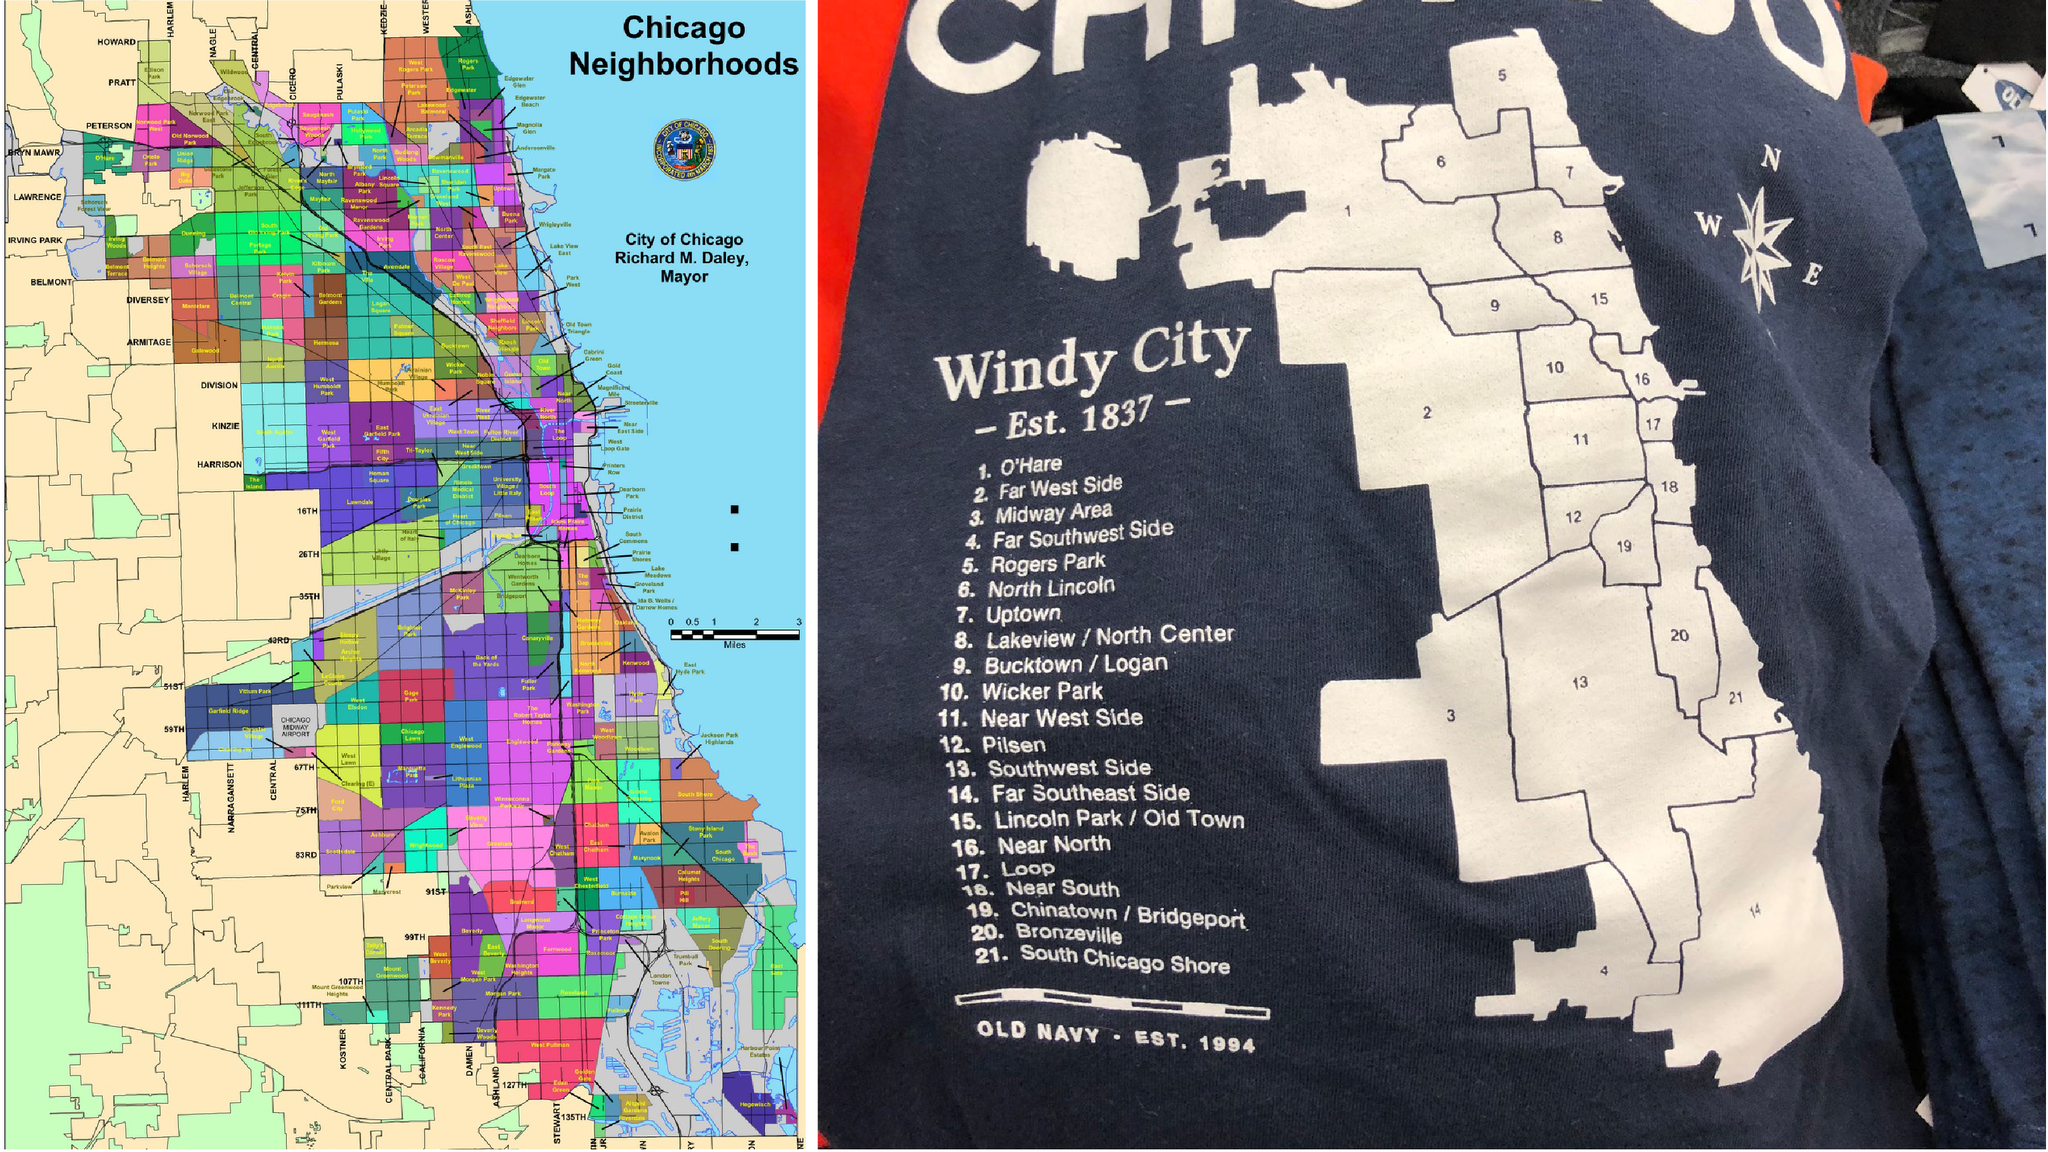 Old Navy pledges to replace T-shirt design dubbed 'worst Chicago map ever'